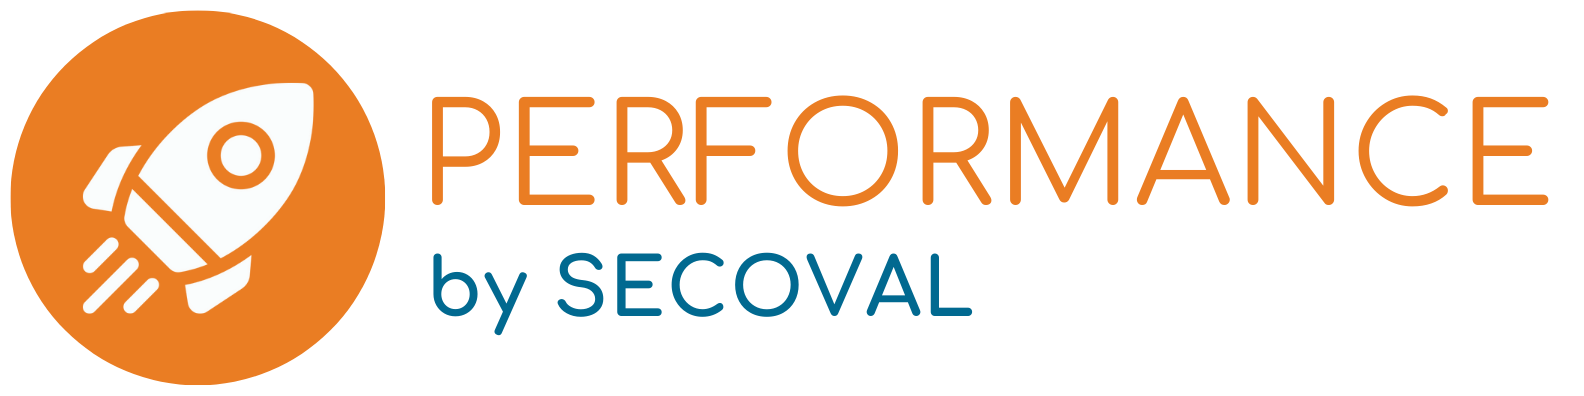 performance by secoval